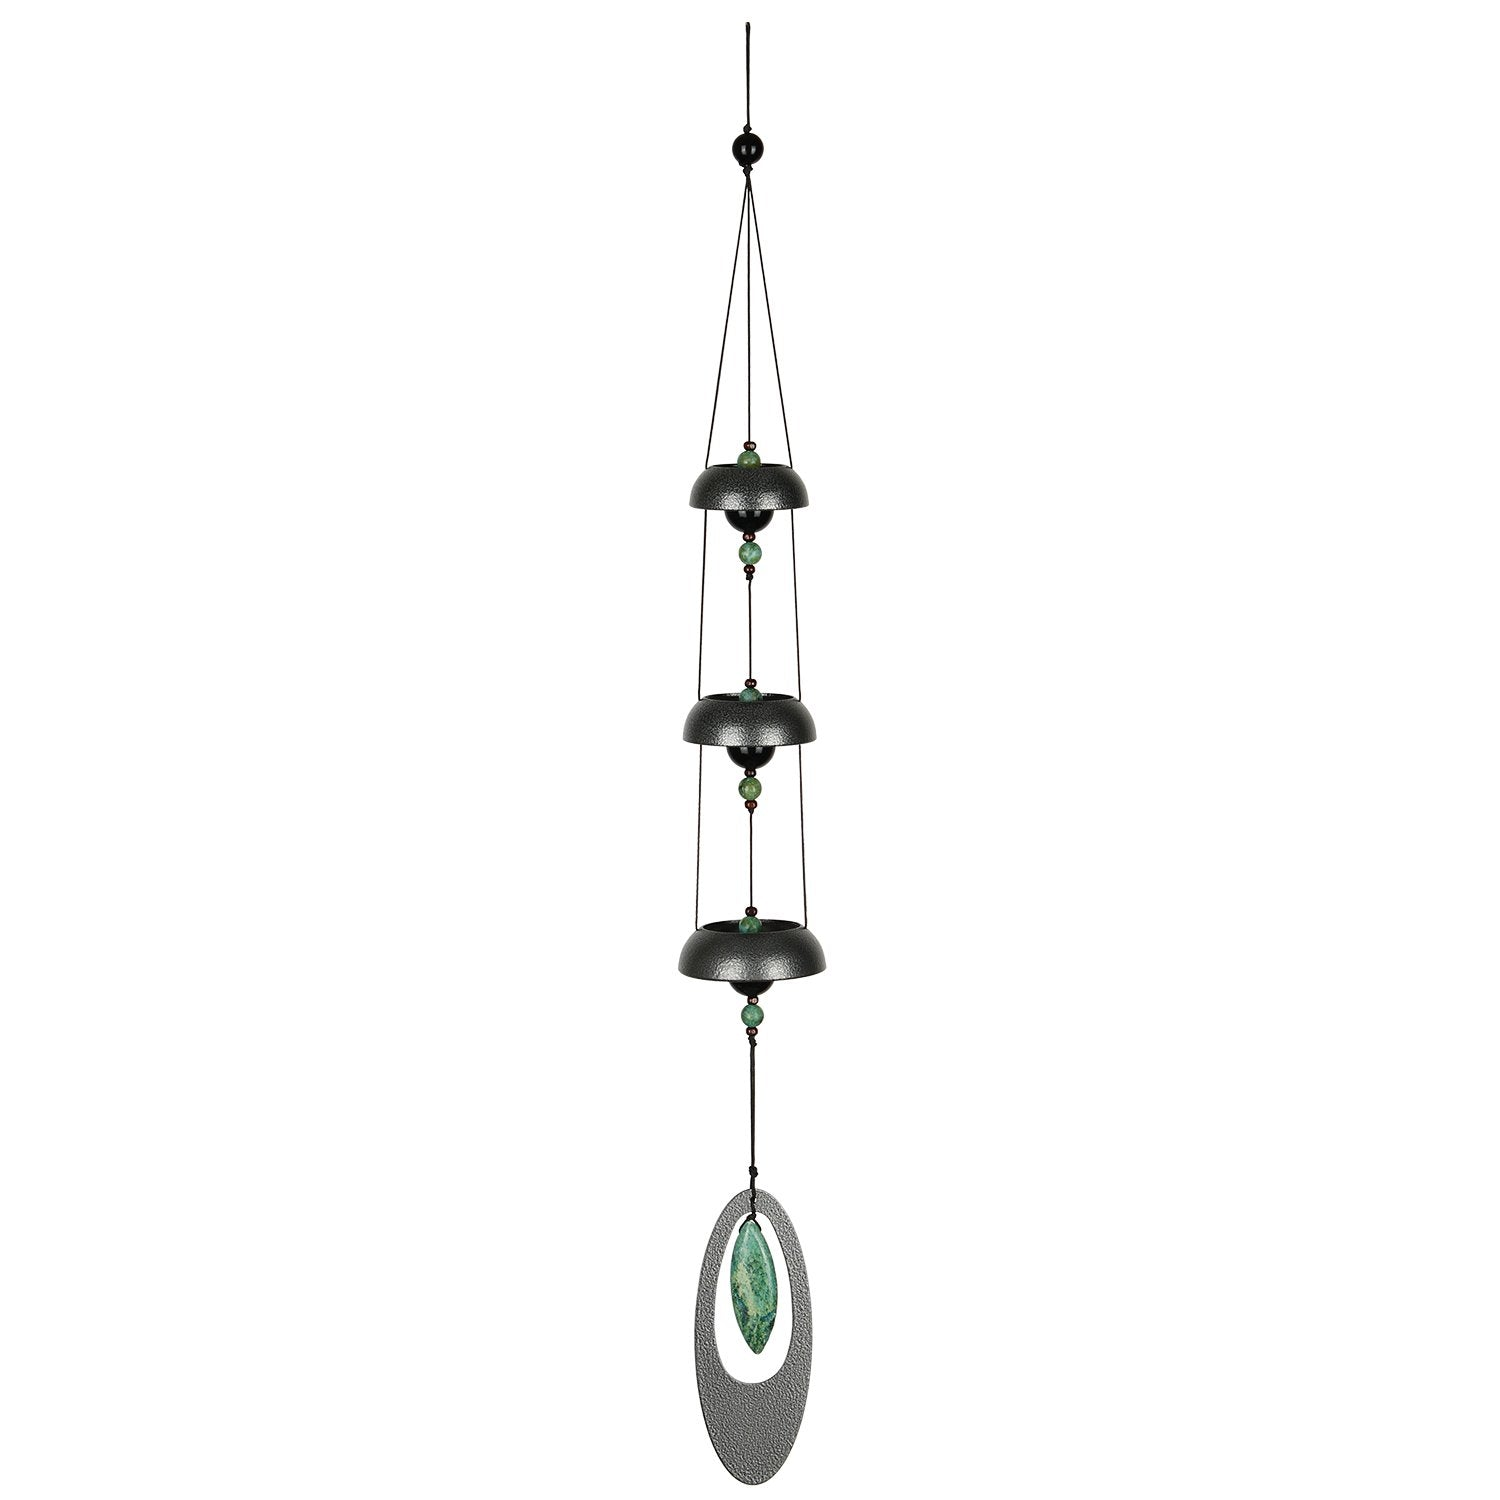 Temple Bells - Trio, Jade full product image